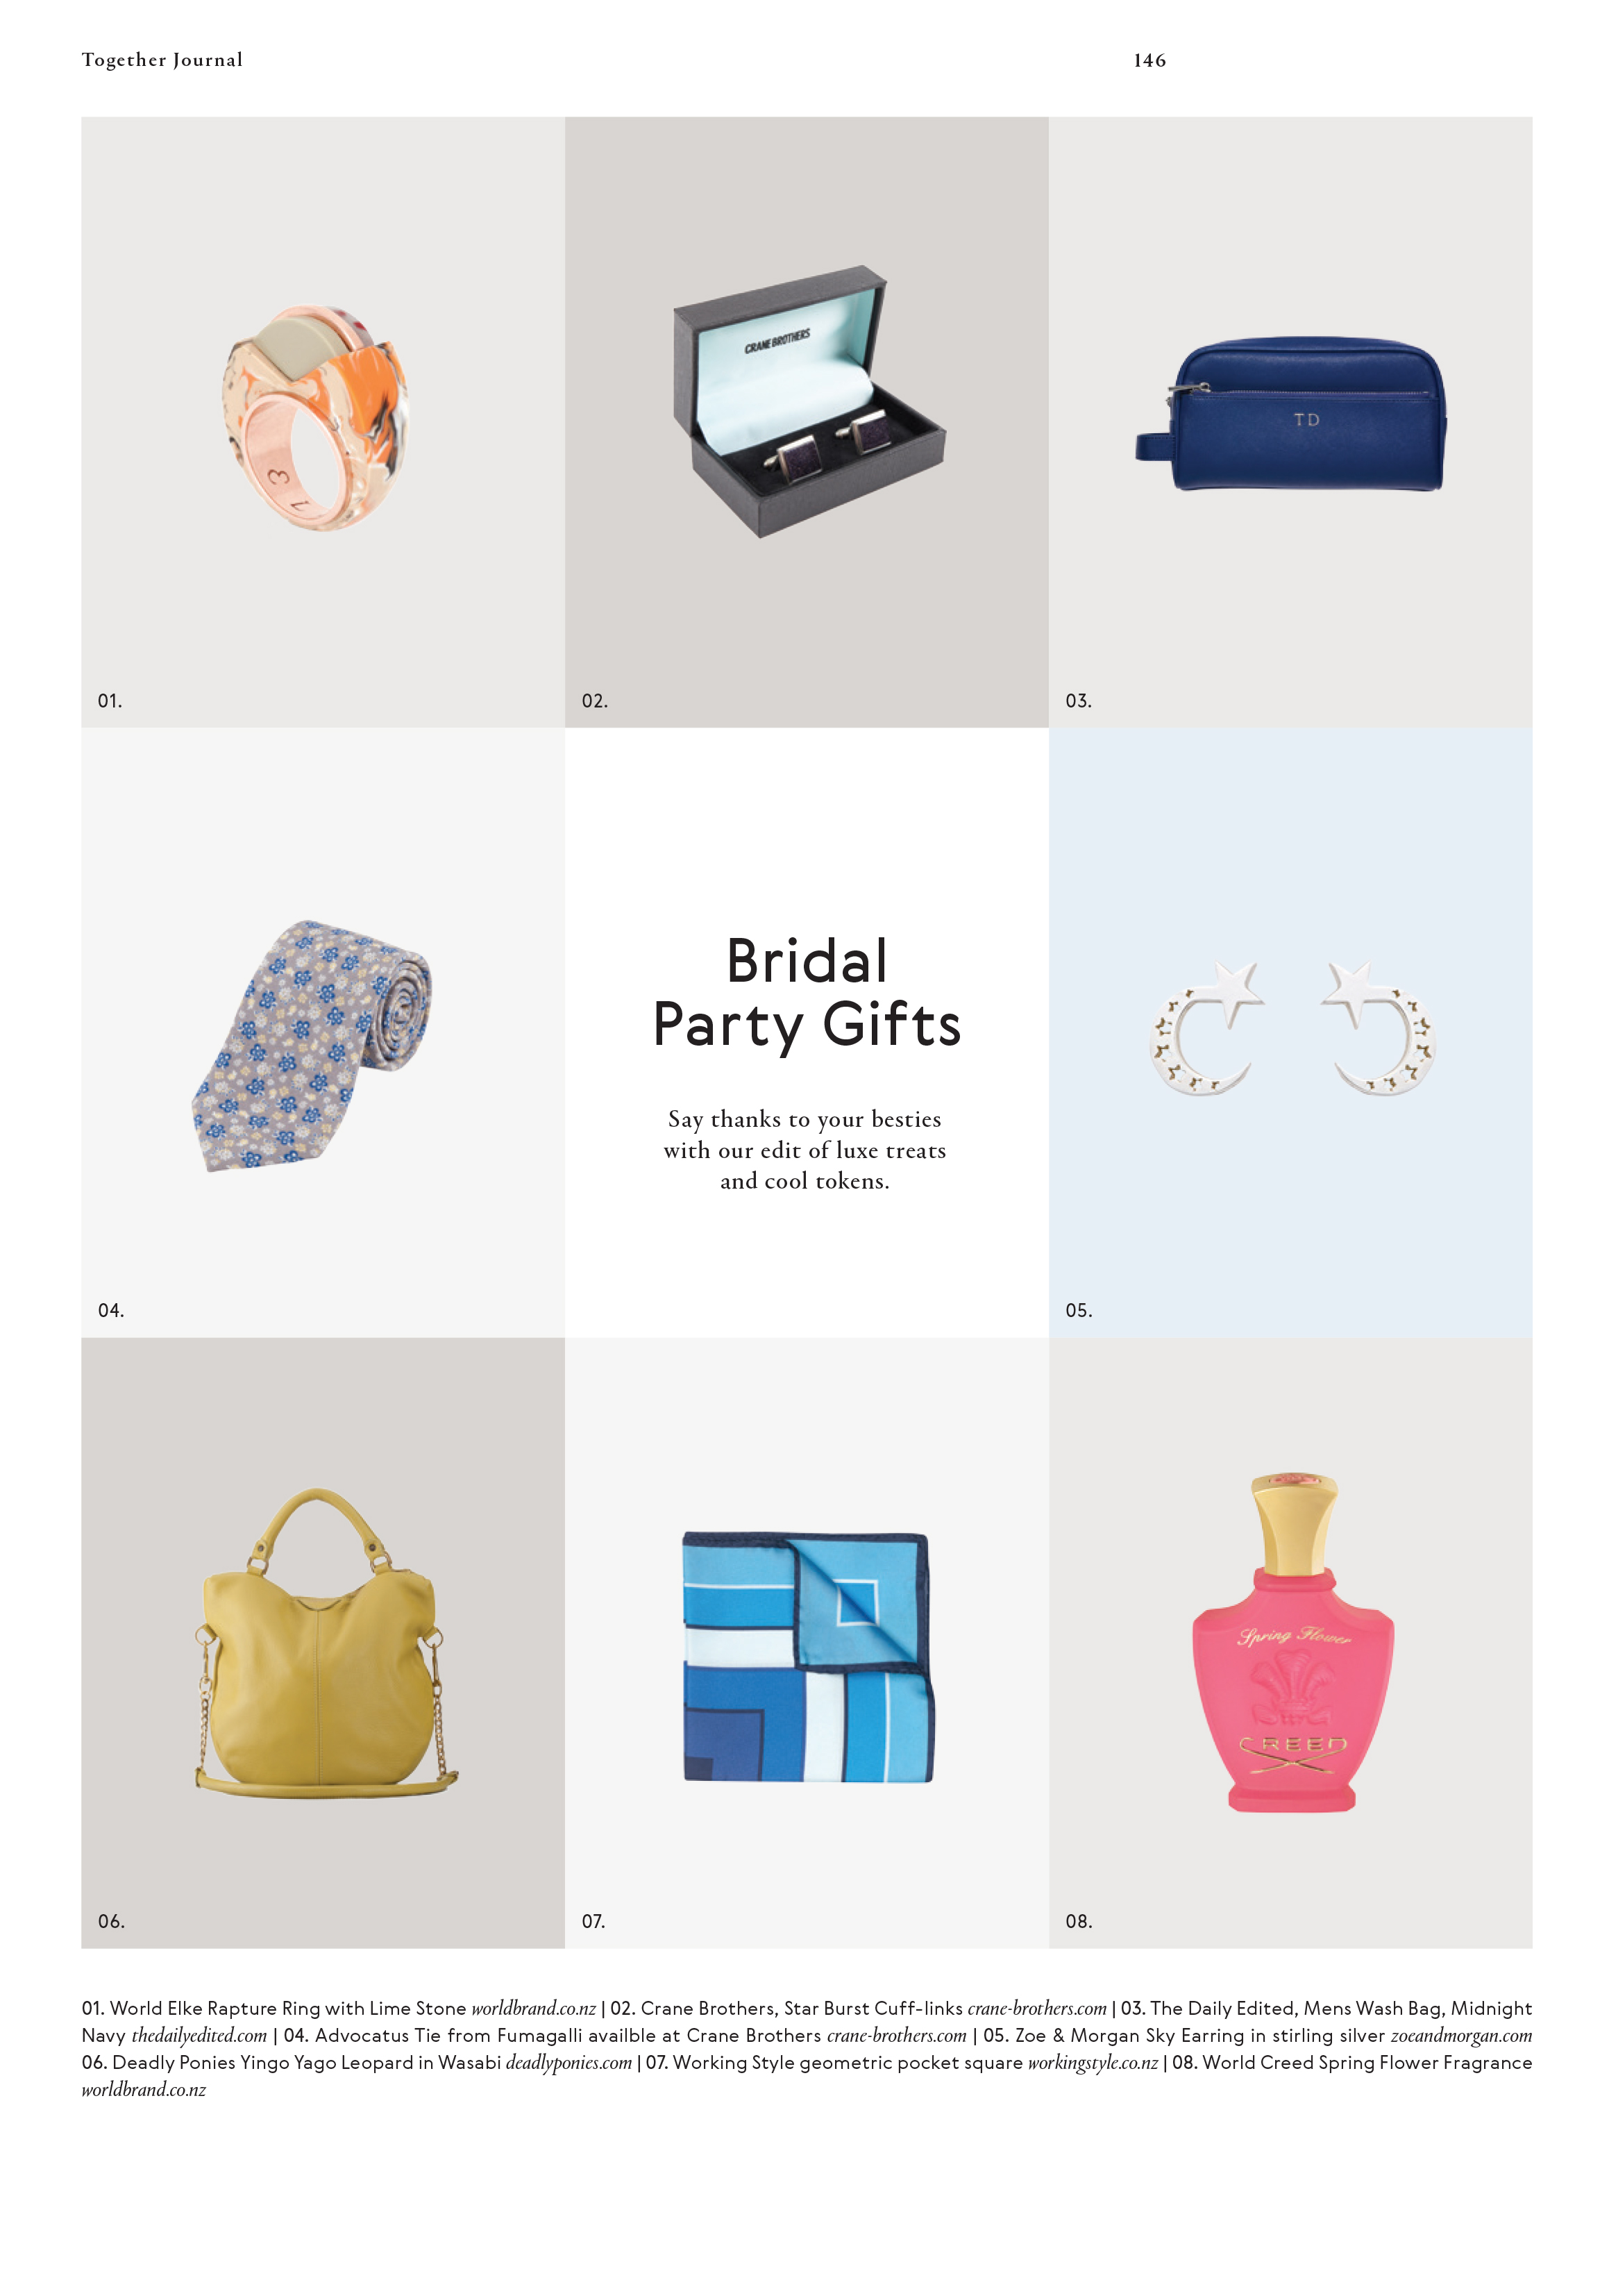 Categories: Inspiration-Bridal Party Gifts - Issue 6